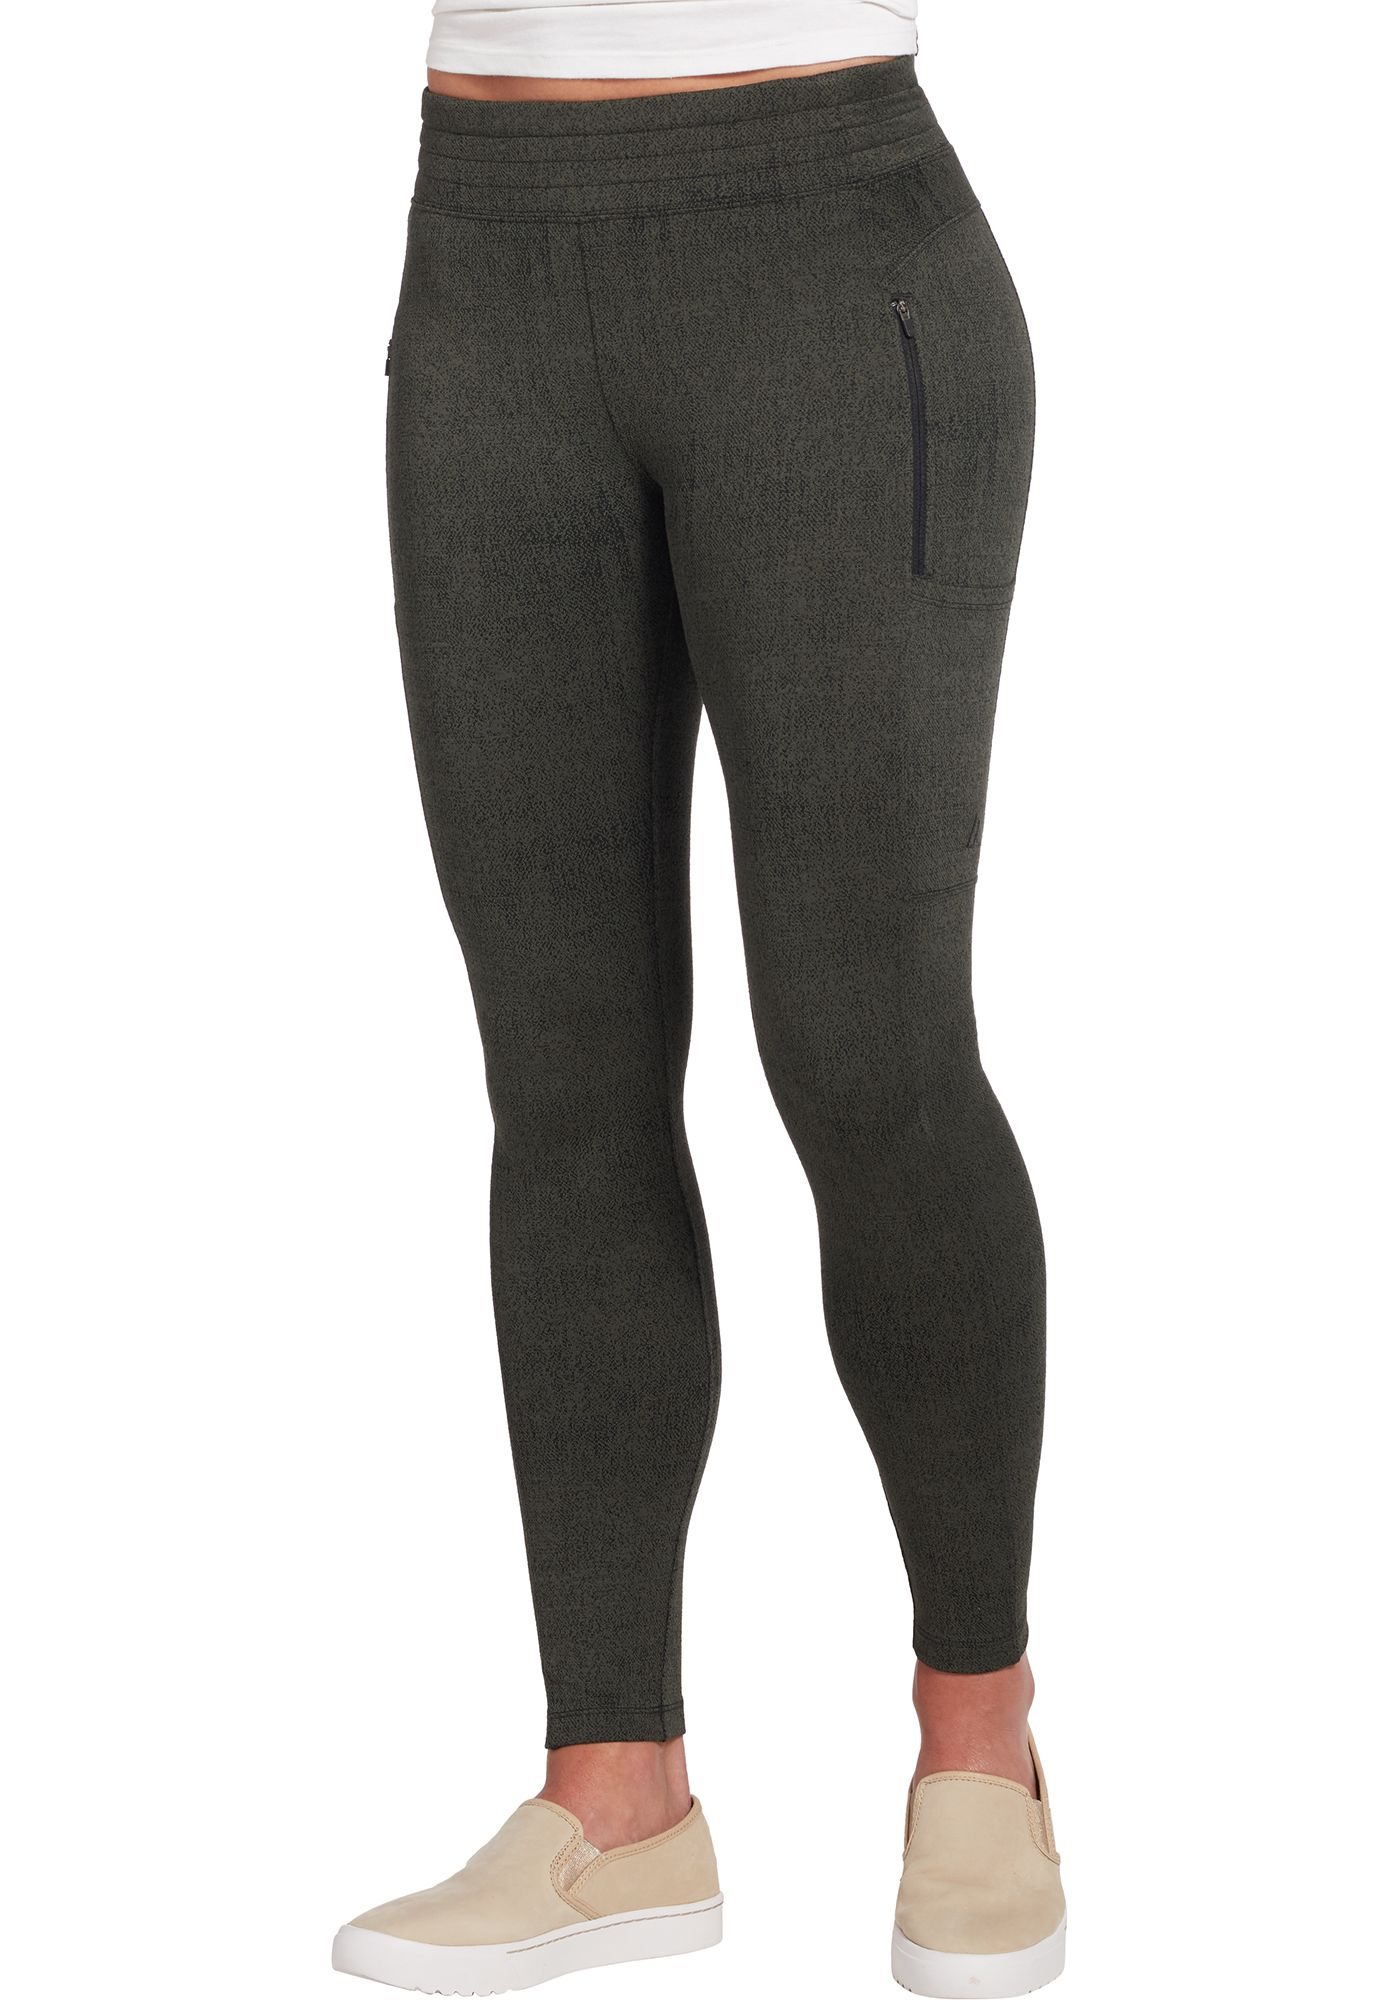 Alpine Design Women's Ivy Mountain Trail Tights